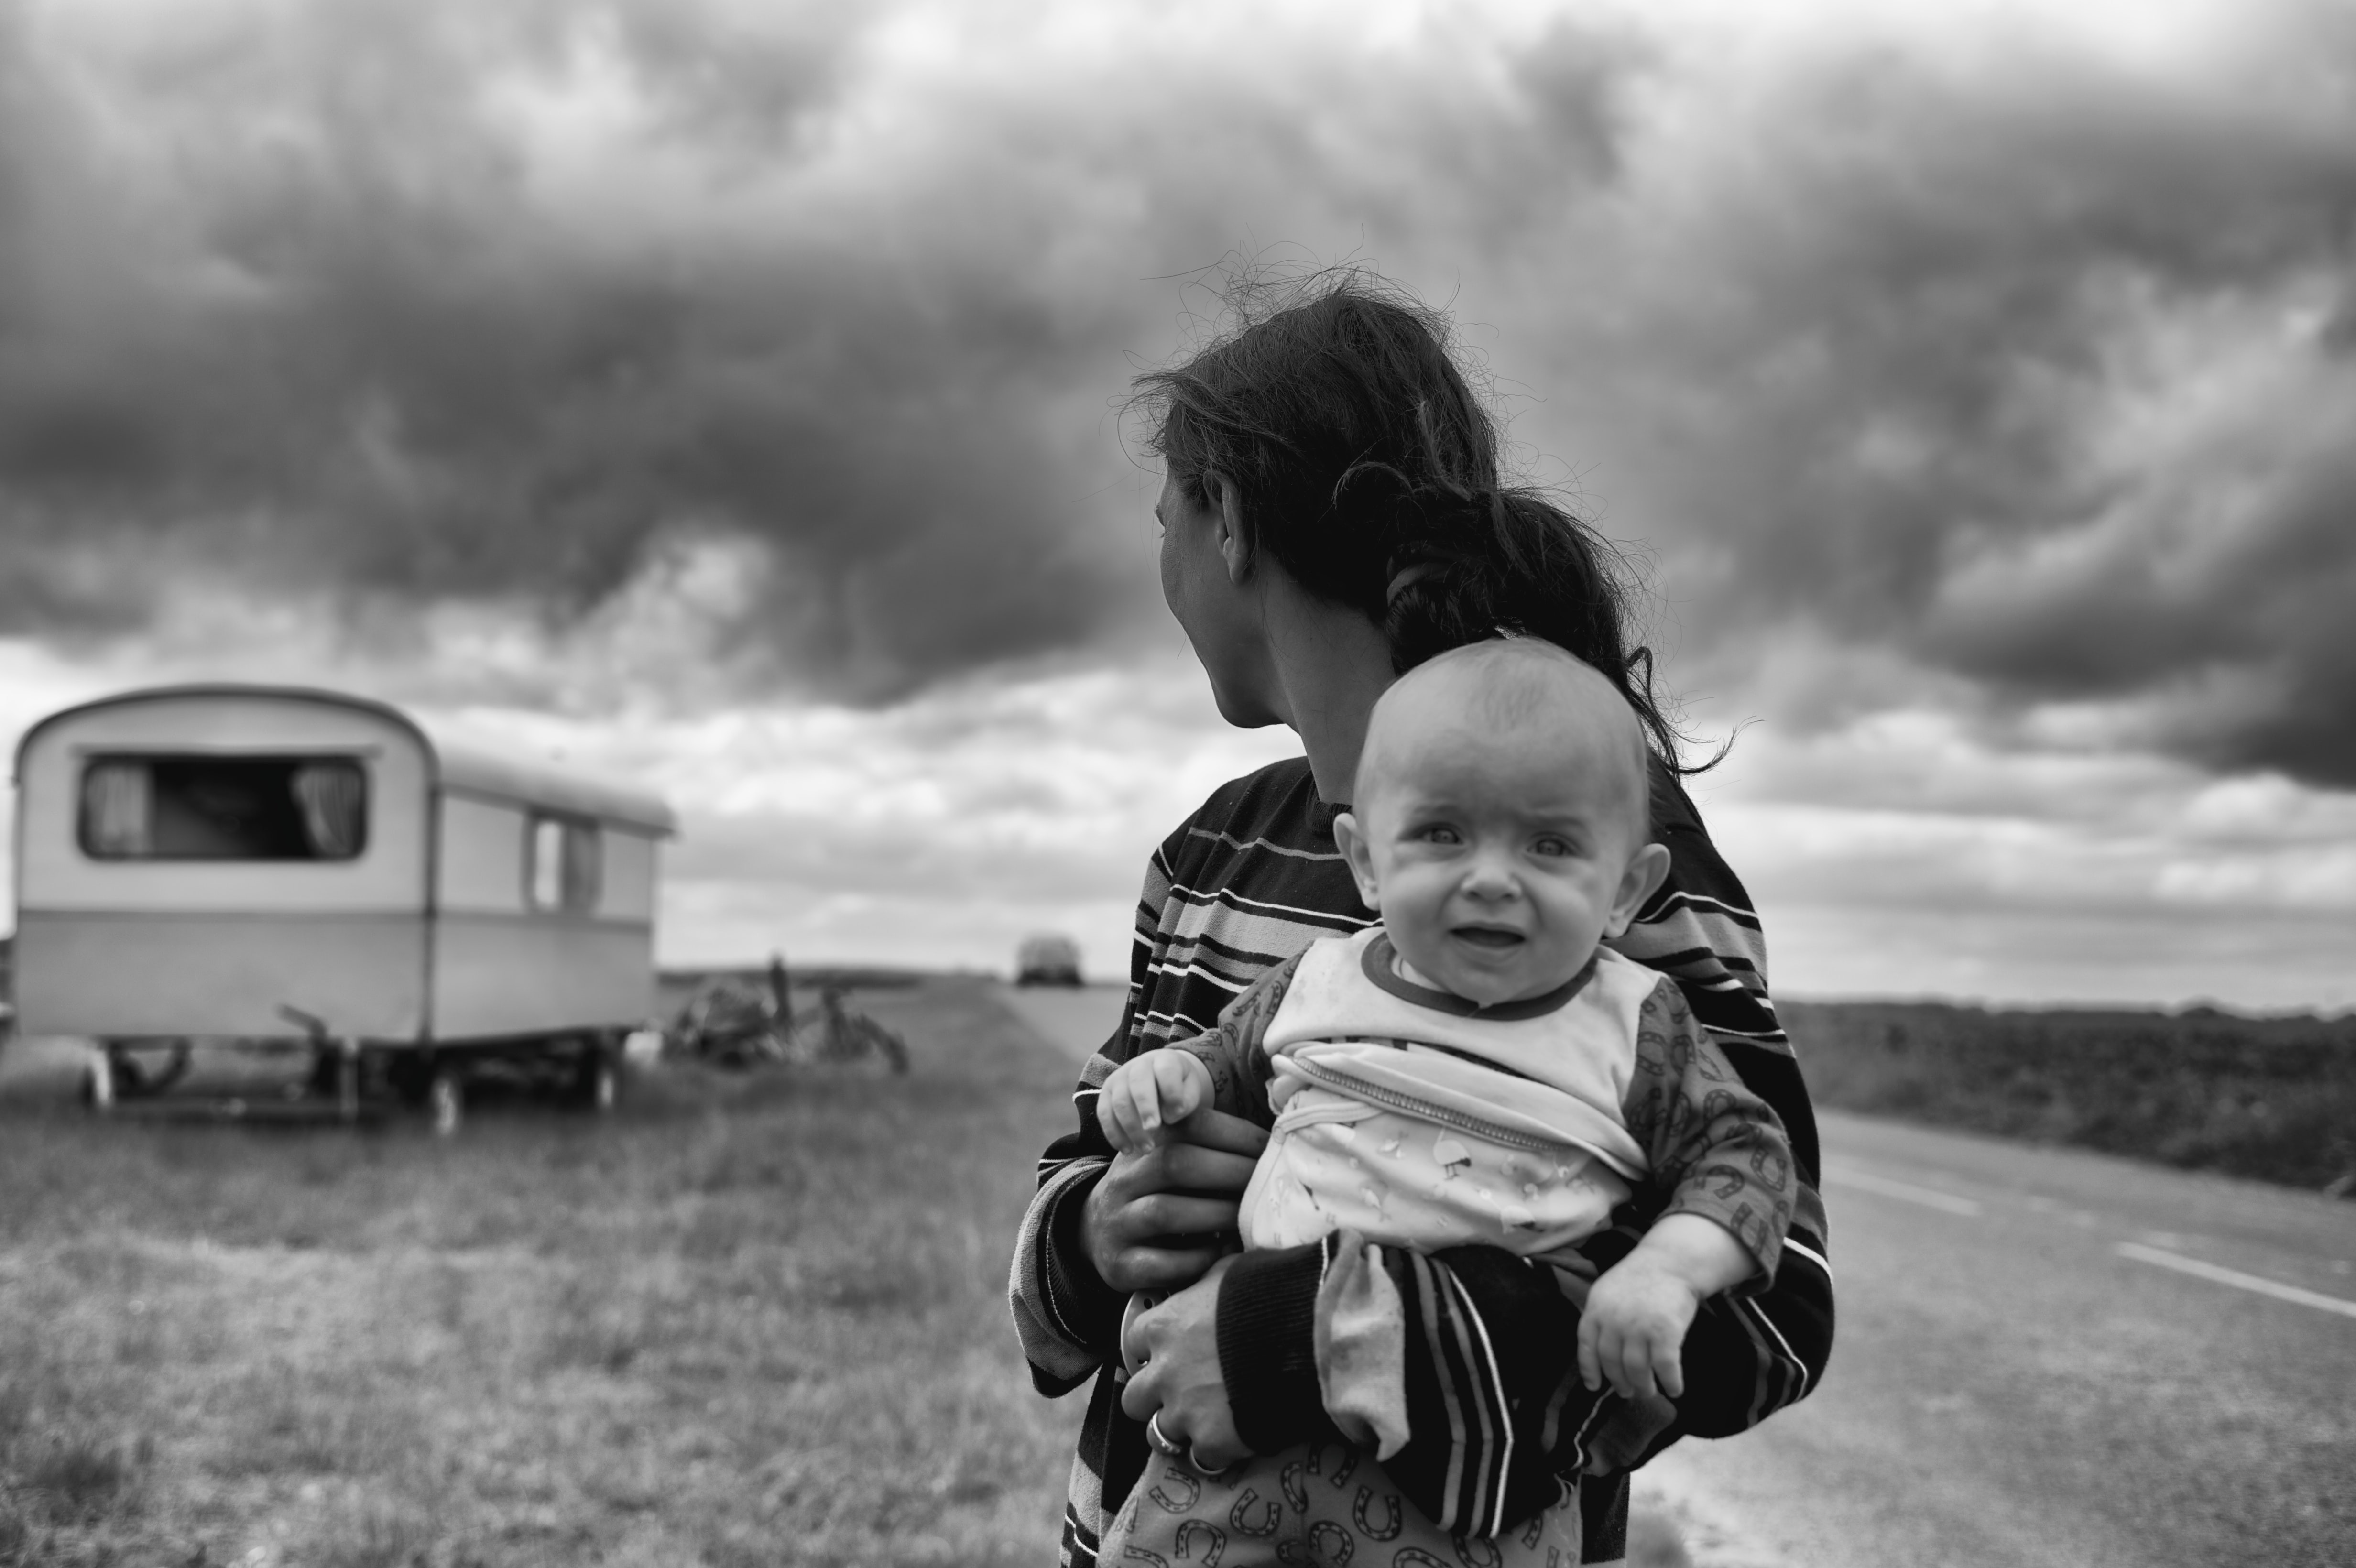 Black and white image of a mother holding a child next to a road and trailer